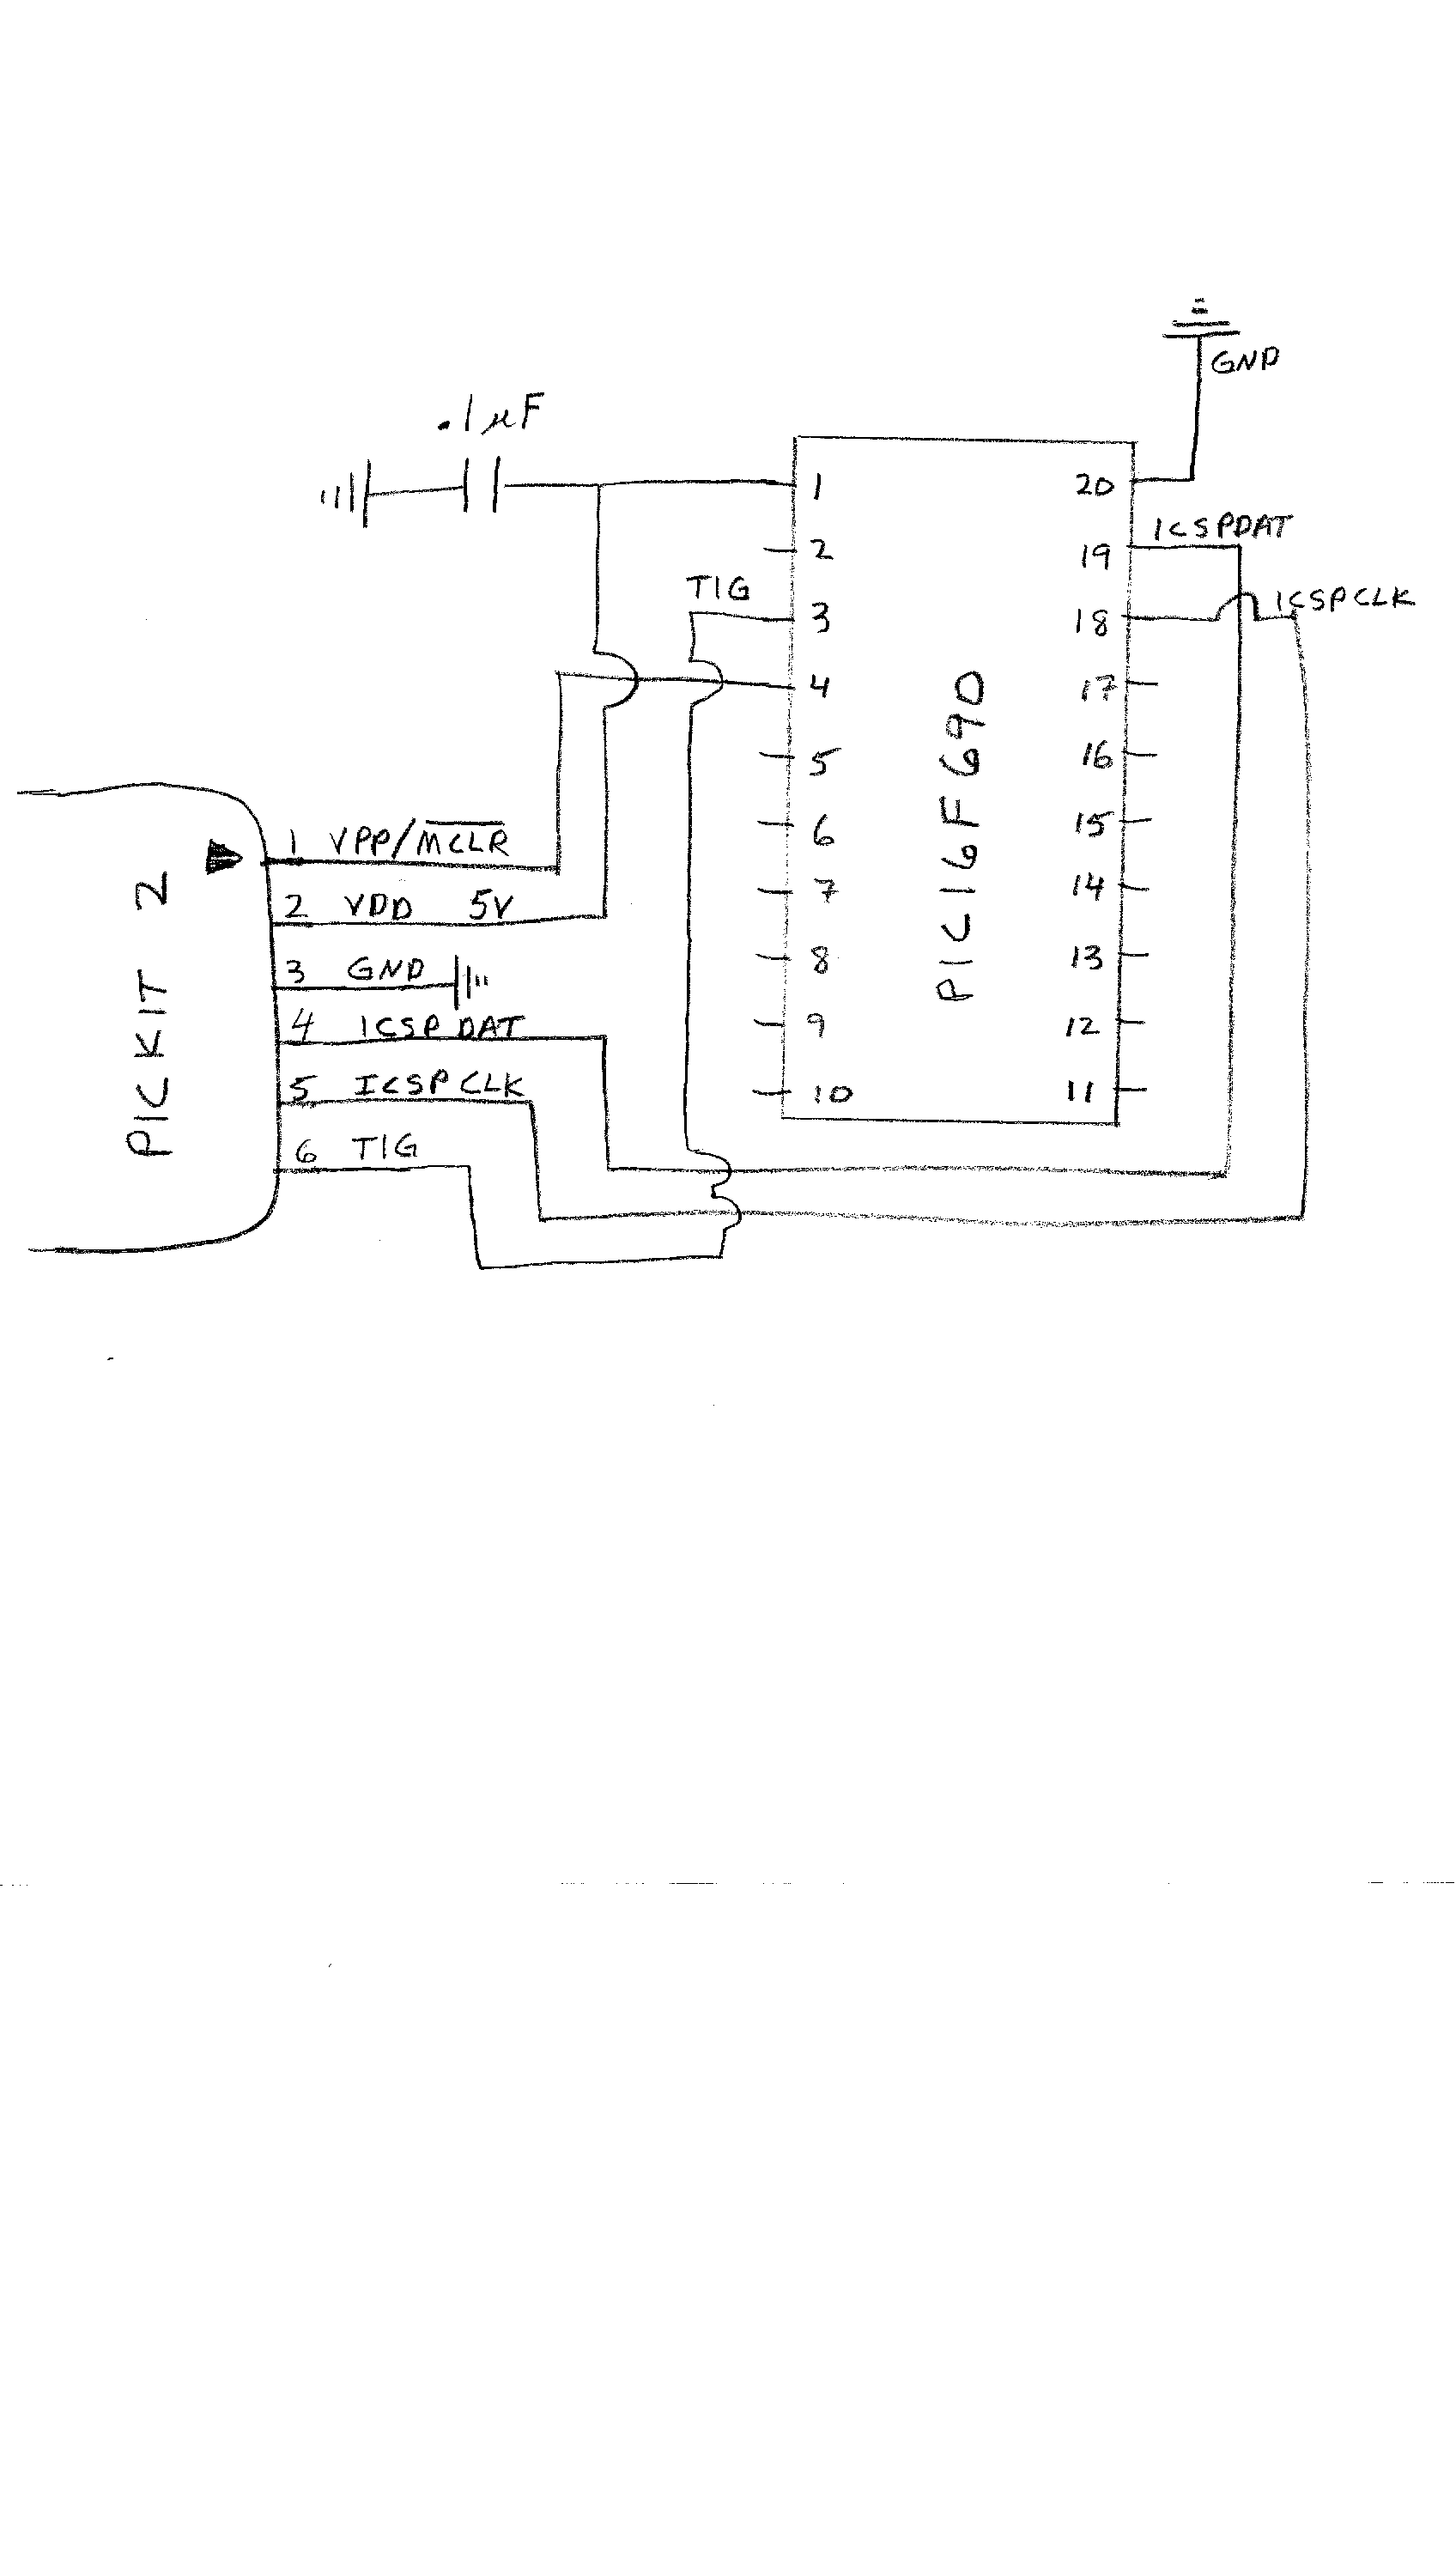 3 wire 2 circuit diagram first program the pic chip with the program test.asm ...